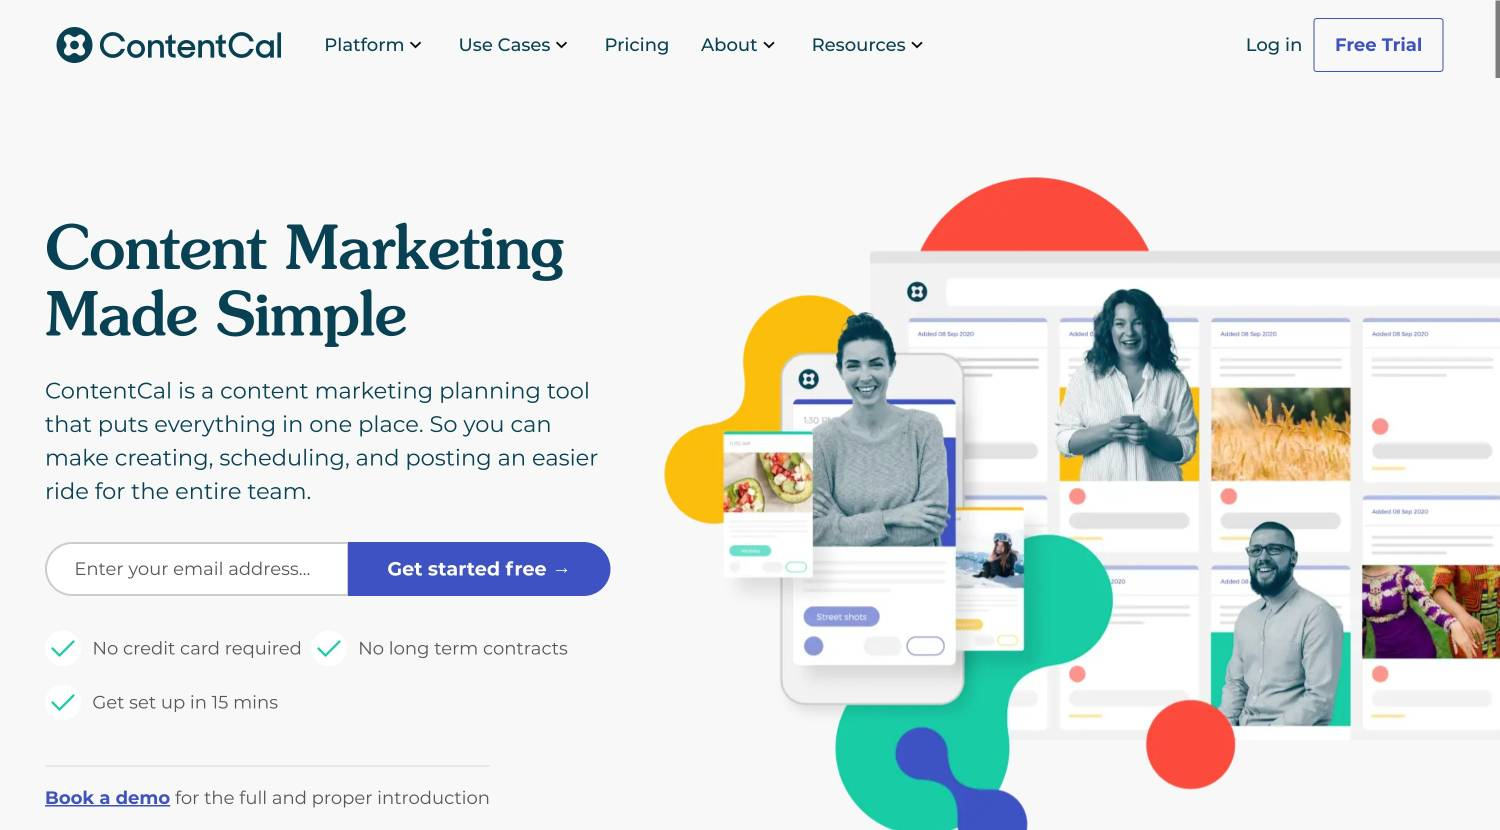 content marketing collaboration tool ContentCal